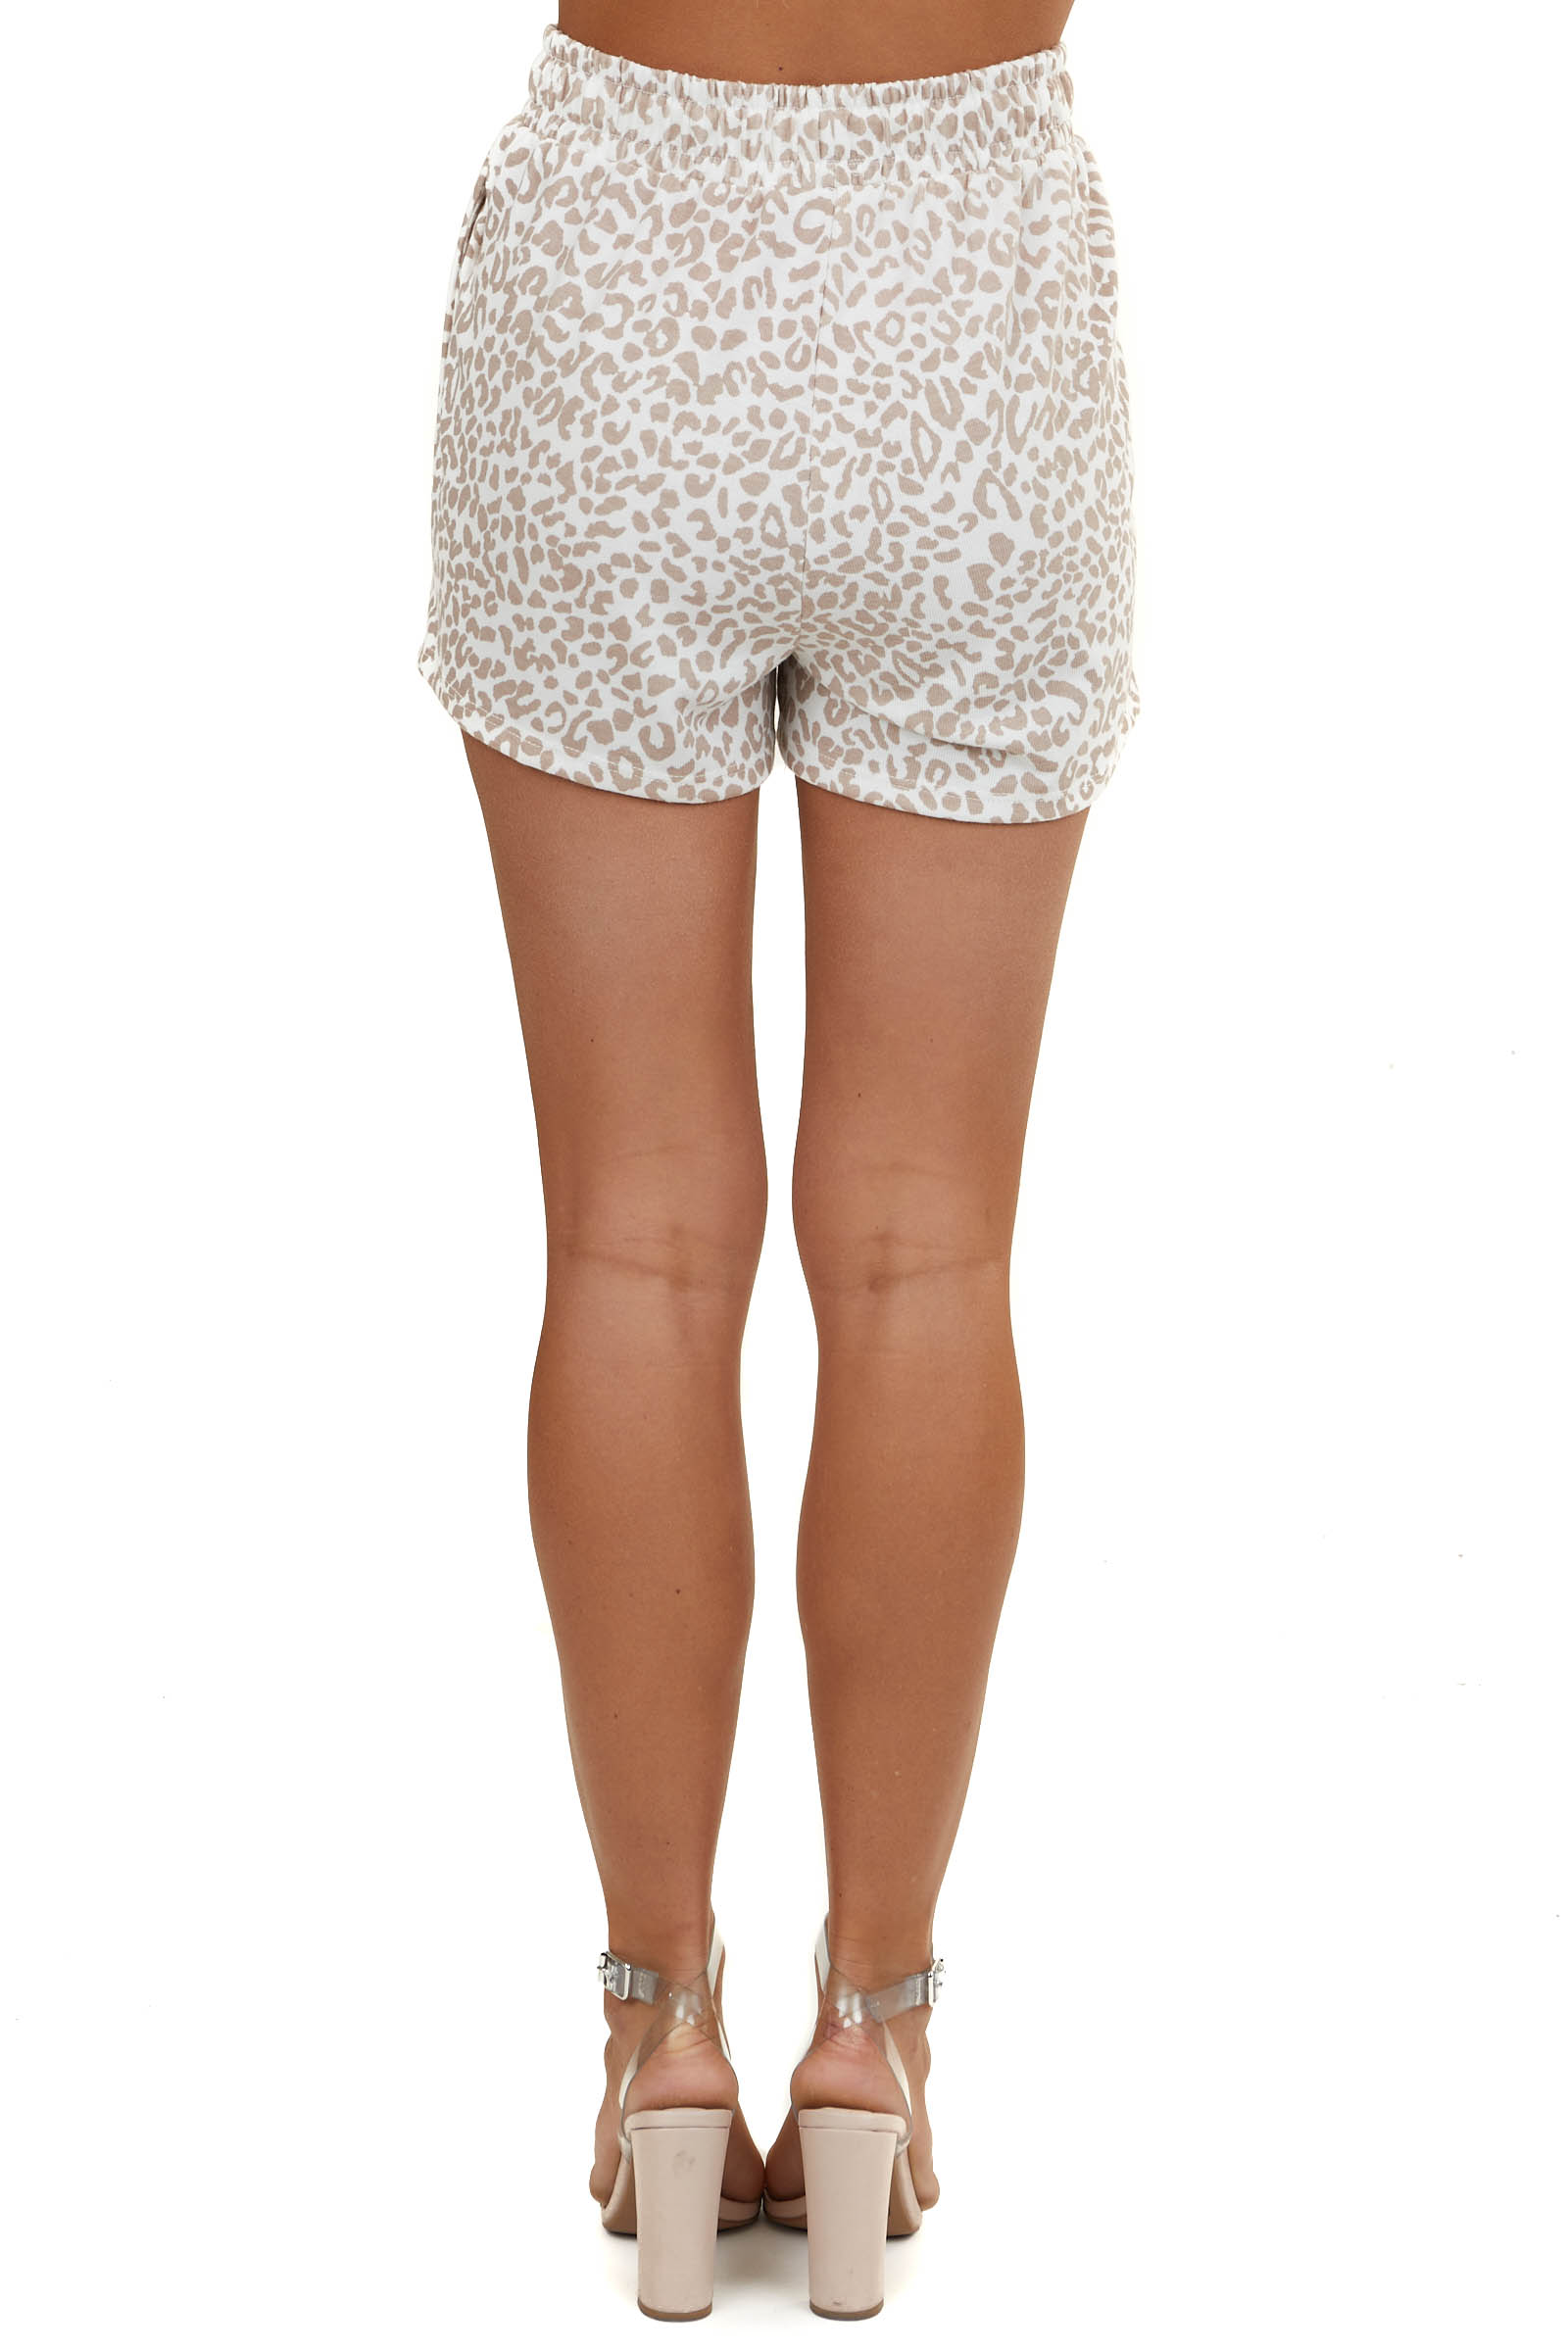 Off White Leopard Print Soft Knit Shorts with Side Pockets